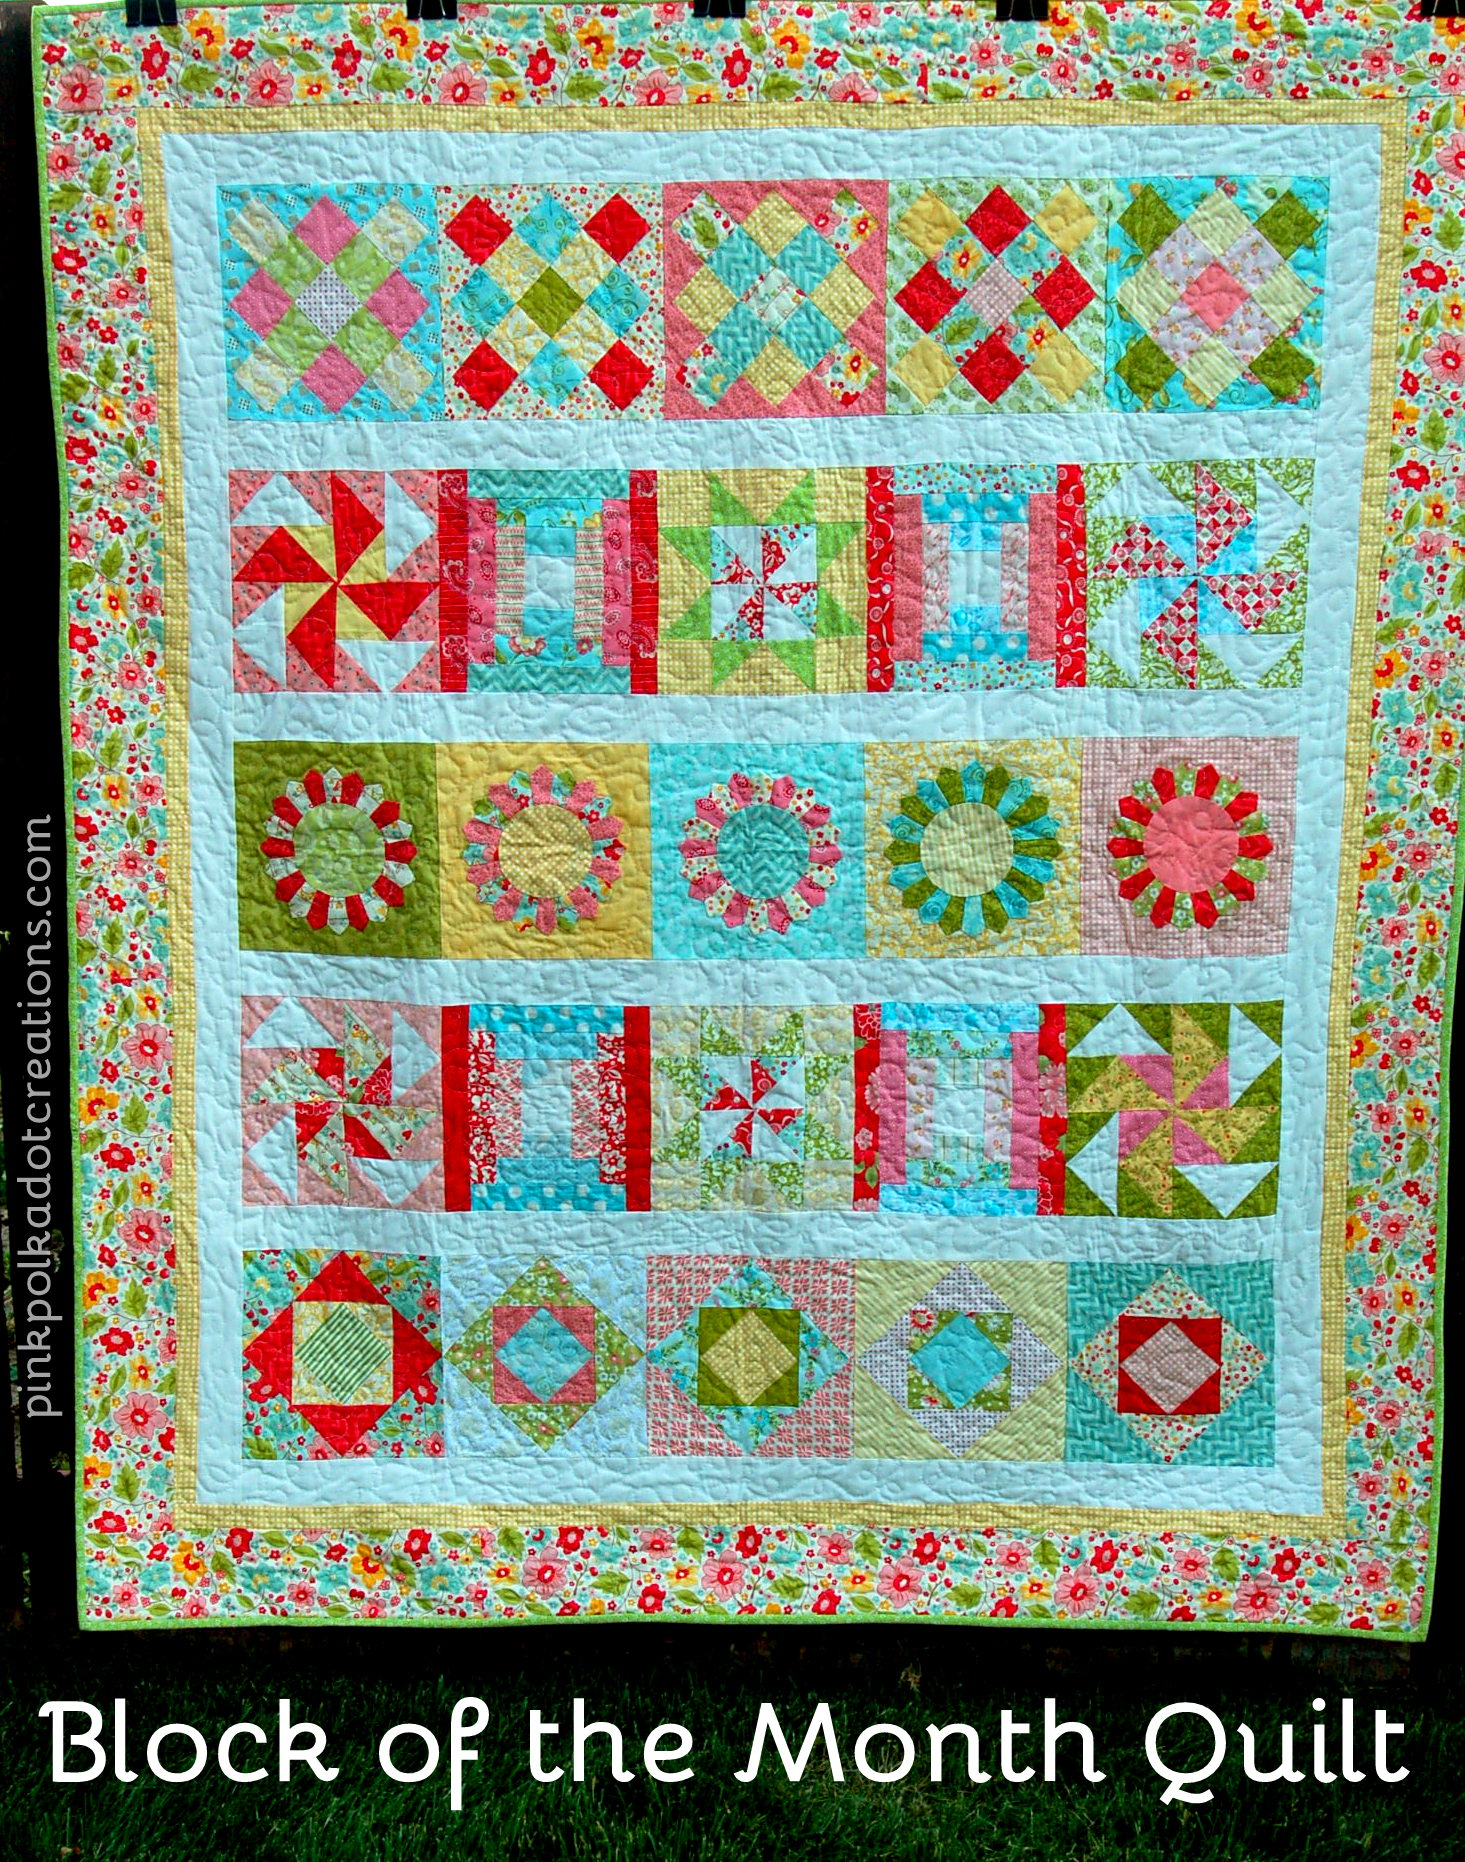 Quilt Patterns Block Of The Month : Block of the Month Quilt - Pink Polka Dot Creations